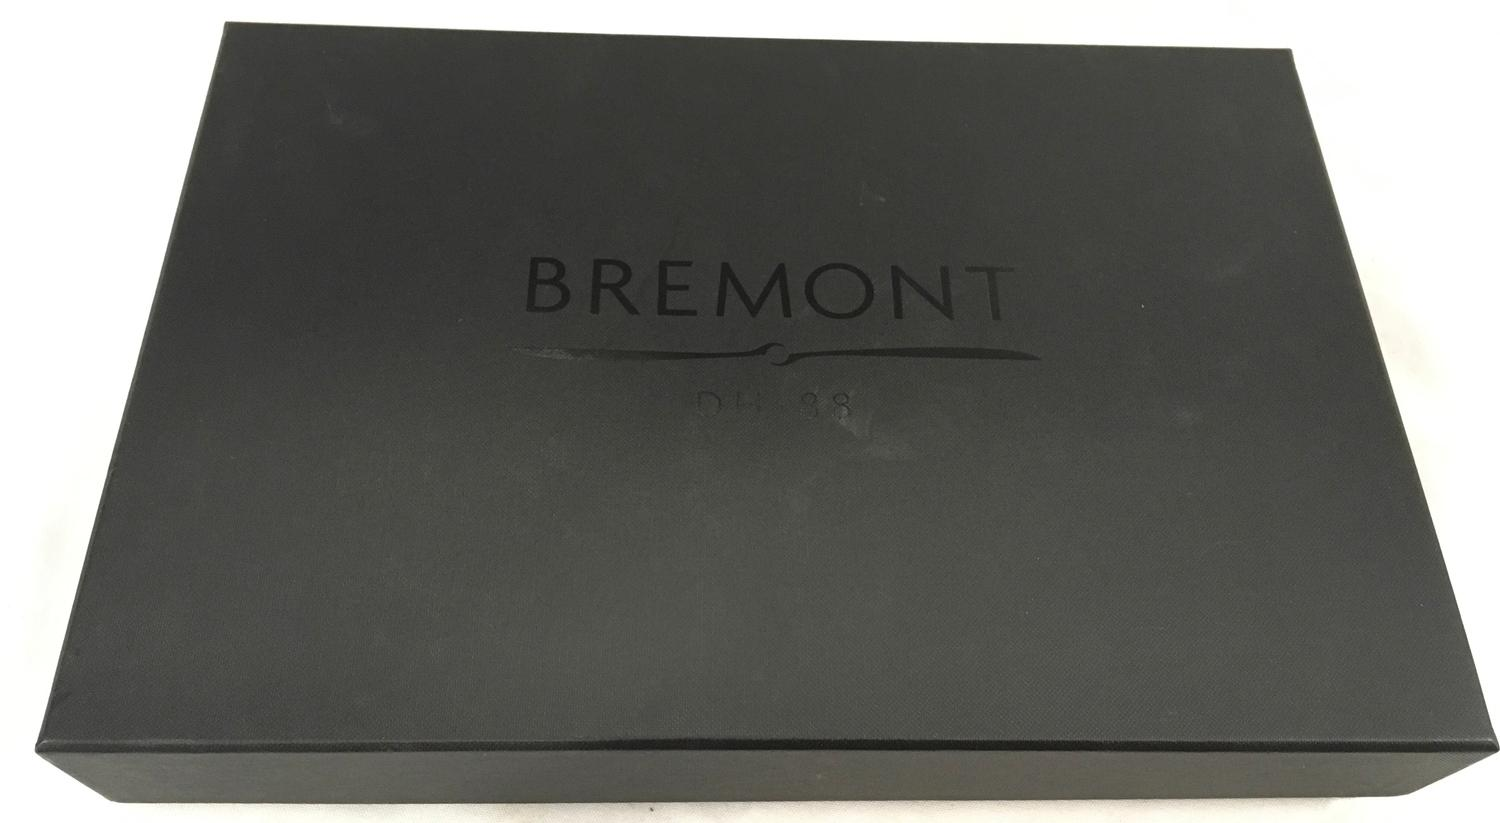 Bremont Stainless Steel gents watch, DH-88 Comet Limited Edition. - Image 11 of 11